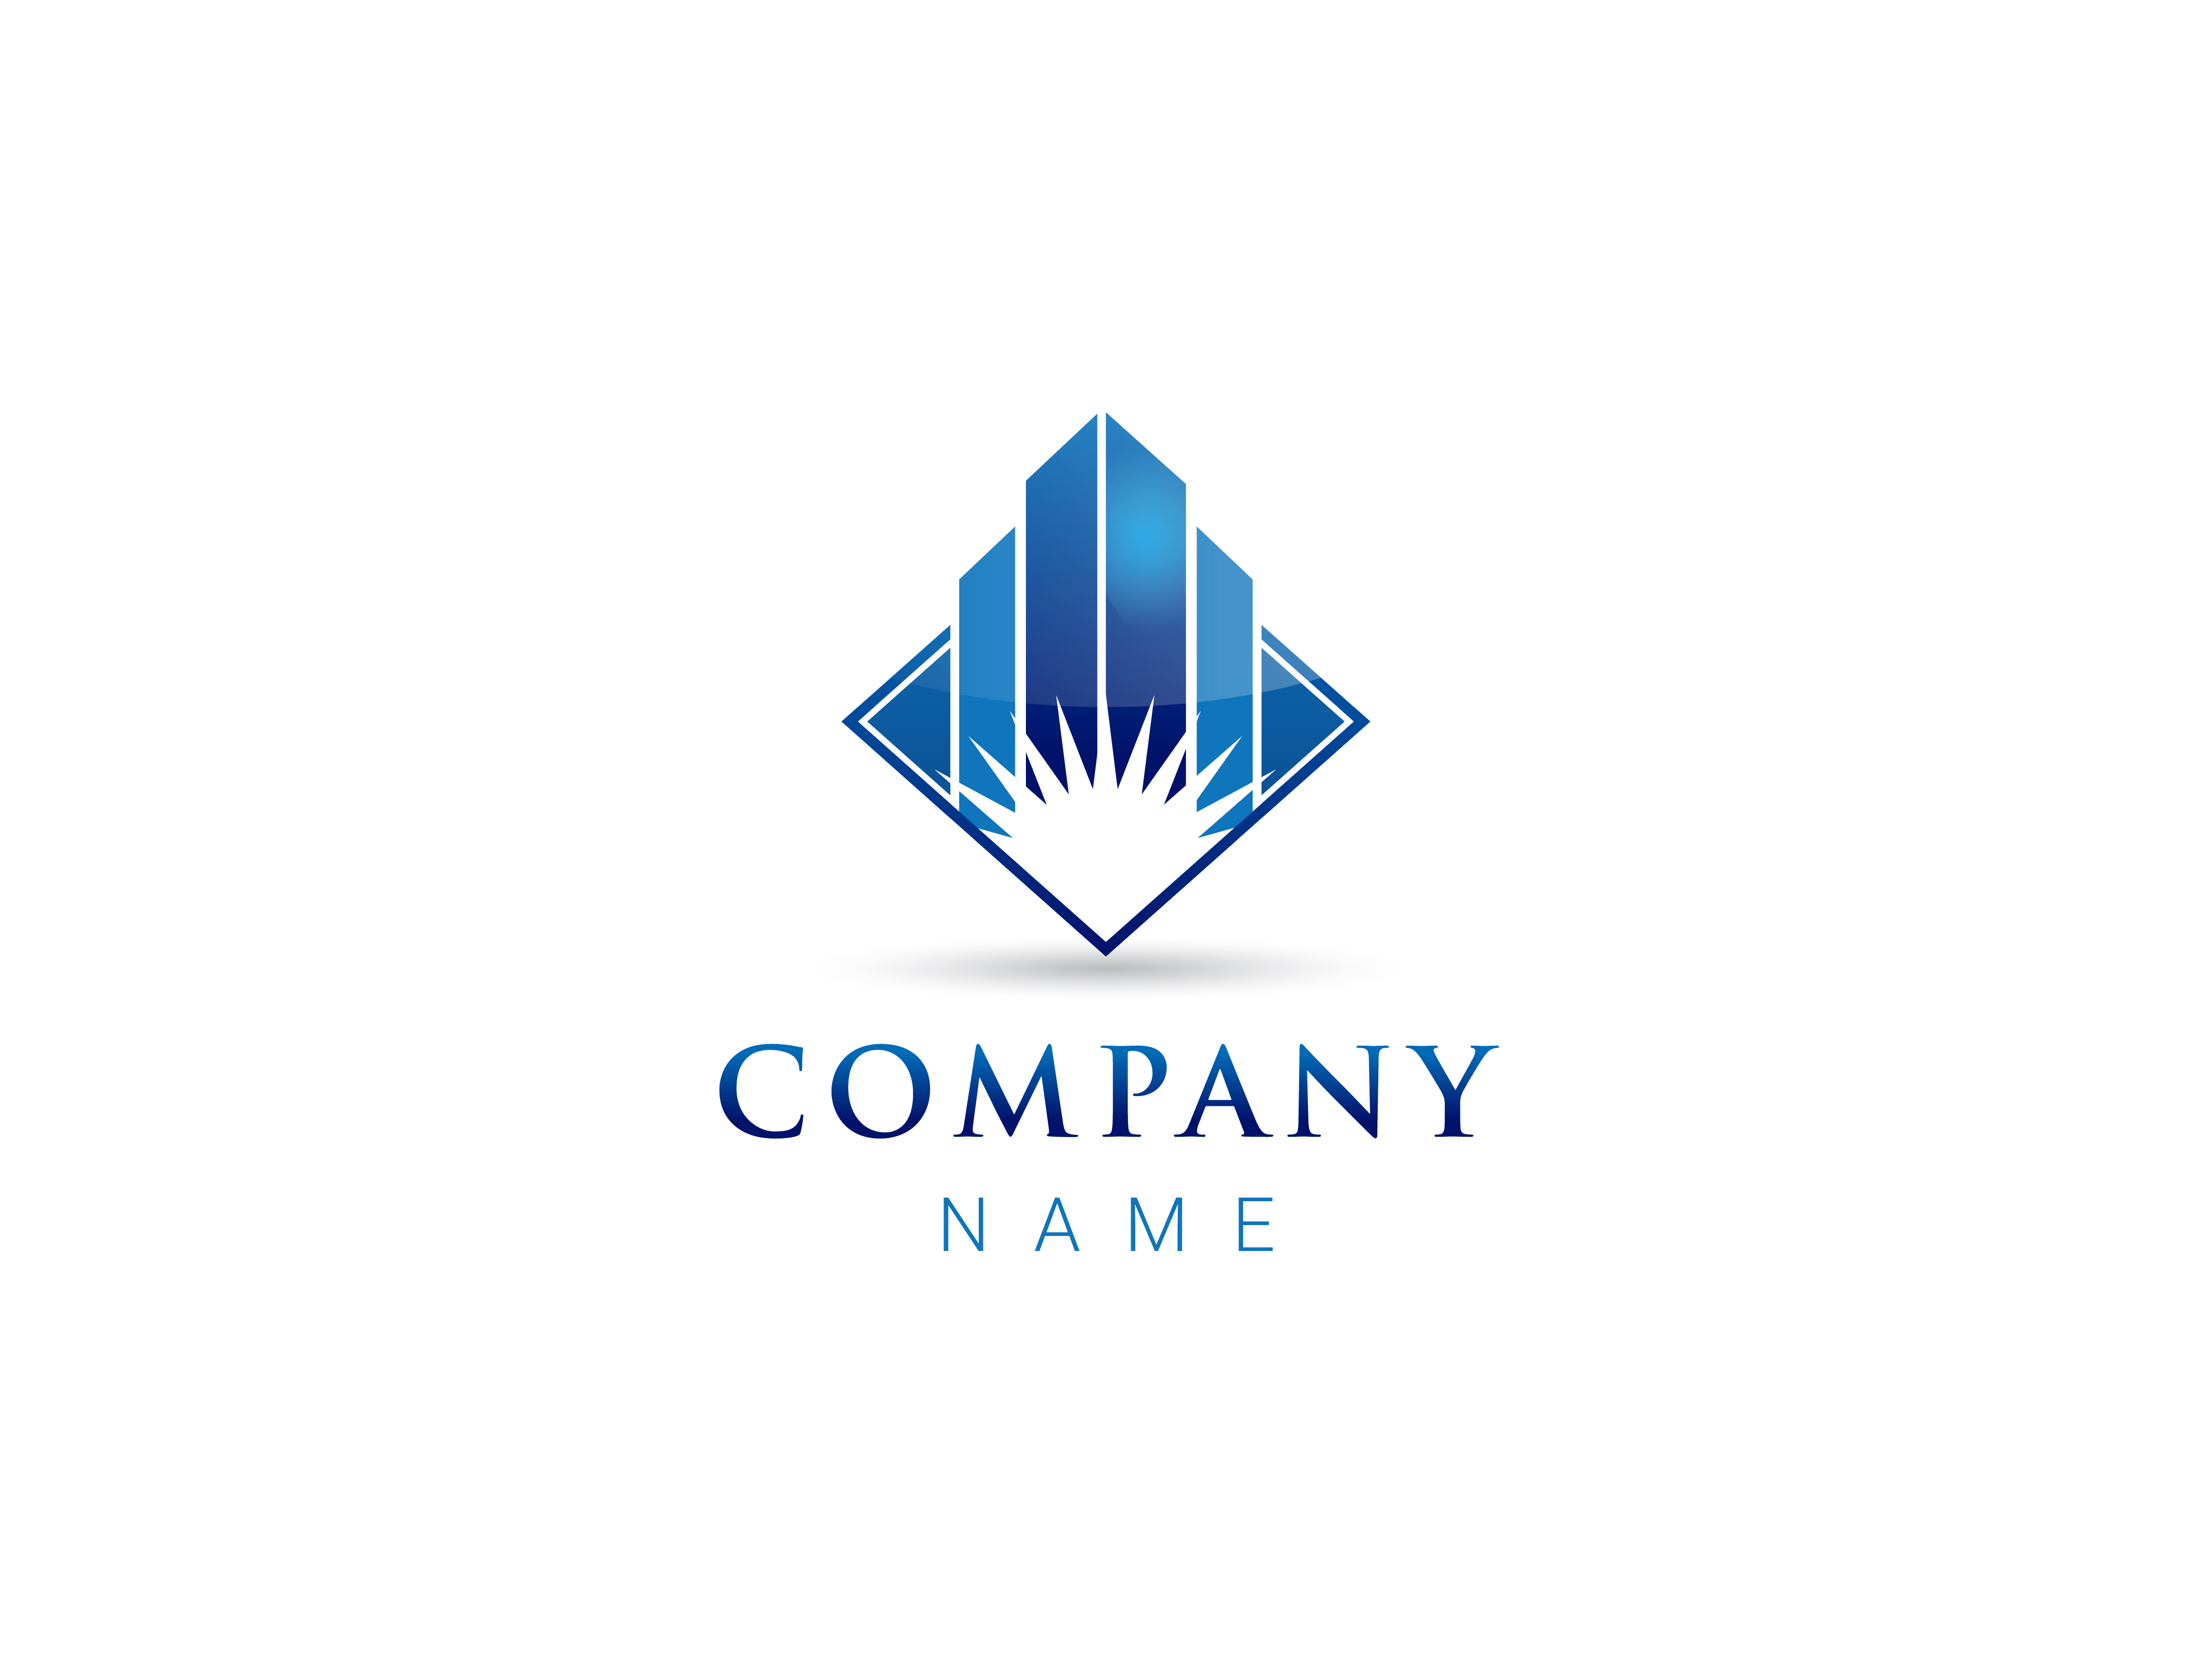 Architectural Real Estate Company Logo by Angela Cini  a perfect logo for Real Estate & Mortgage